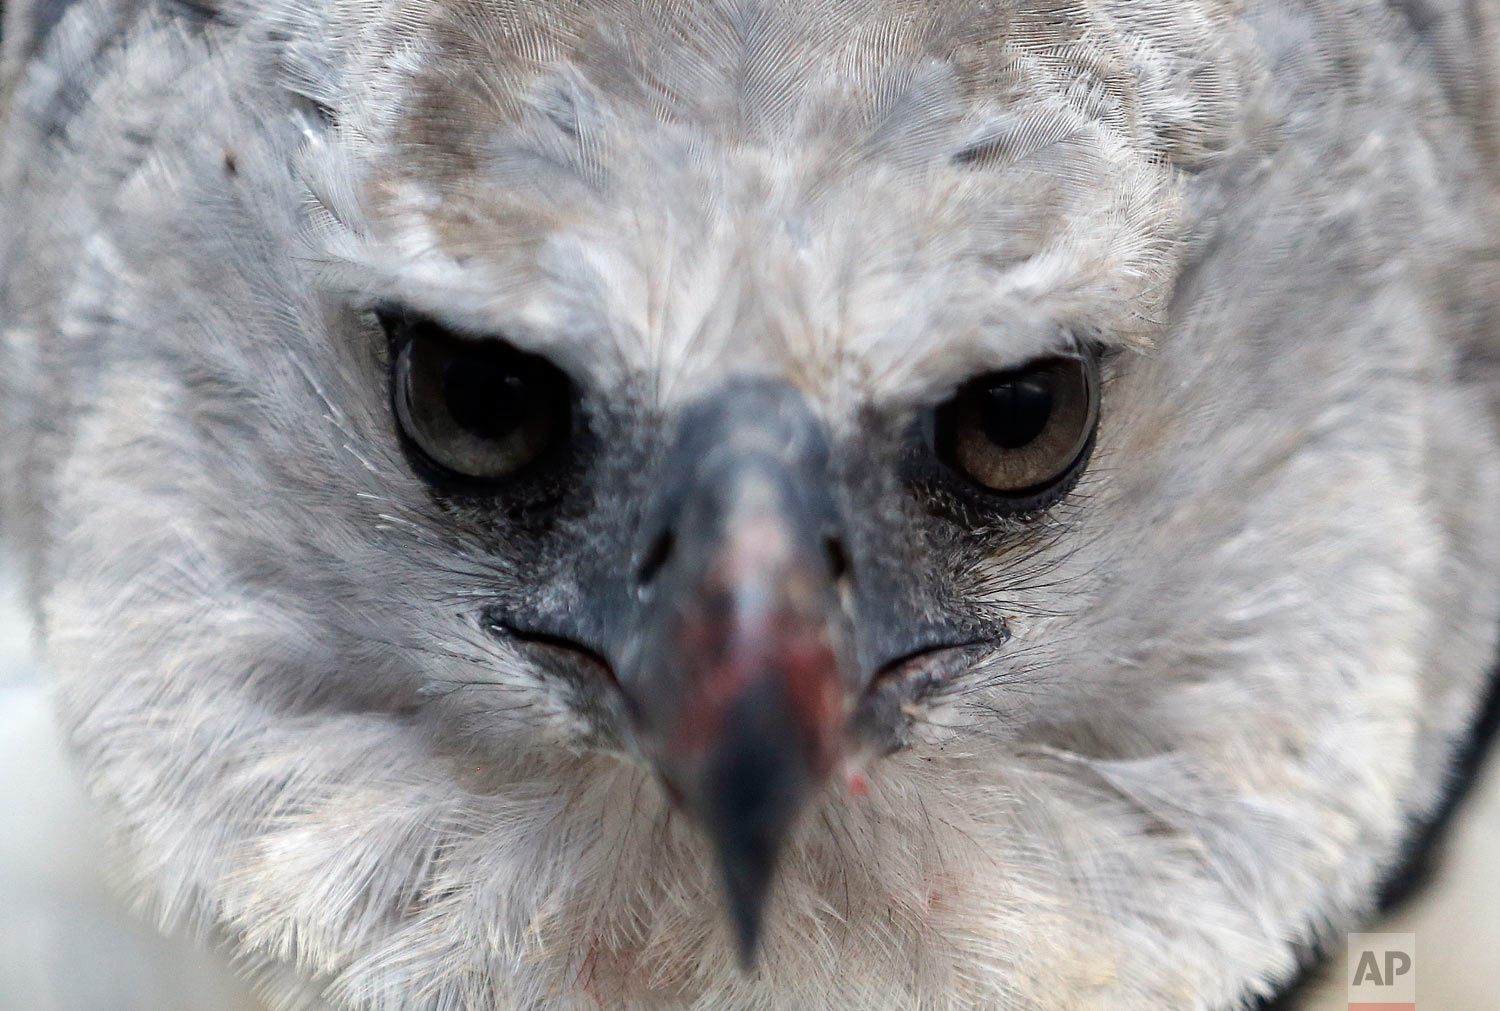 In this Oct. 4, 2018 photo, a Harpy Eagle peers from its enclosure at the La Reserva Biopark in Cota, Colombia. The eagle was rescued one month prior by Colombian Air Force after it was shot by hunters. (AP Photo/Fernando Vergara)